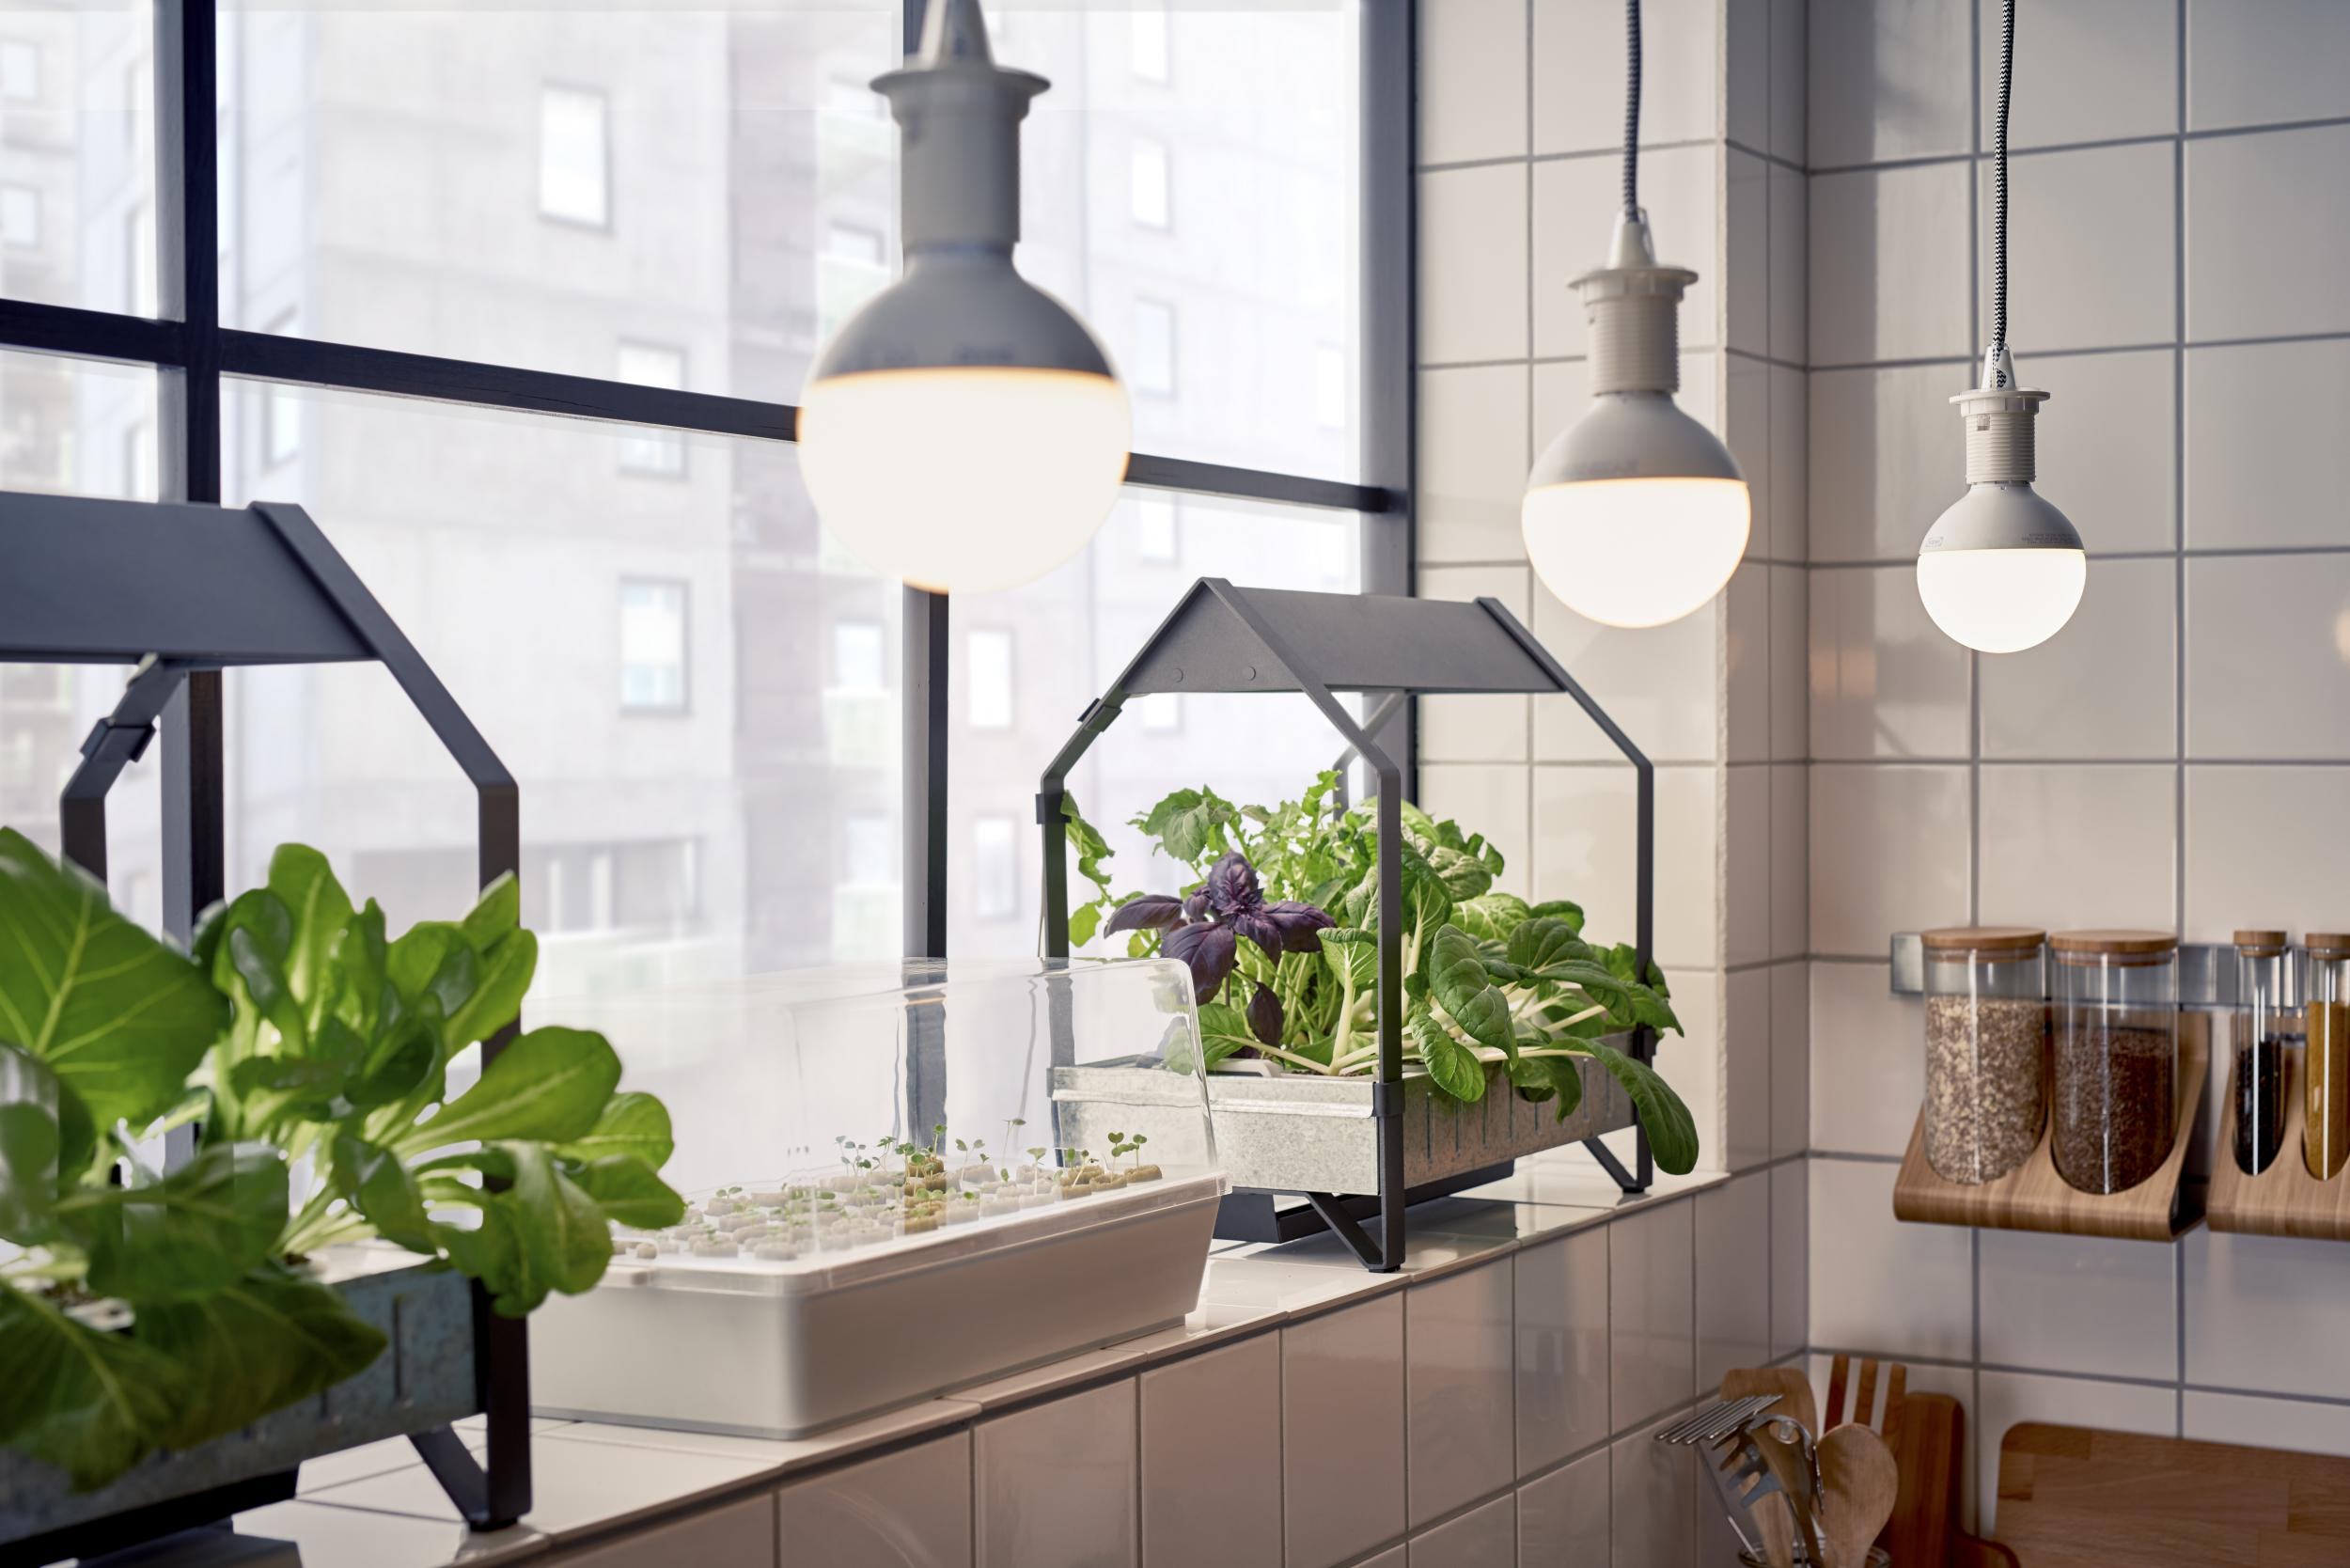 growing lamps and tents